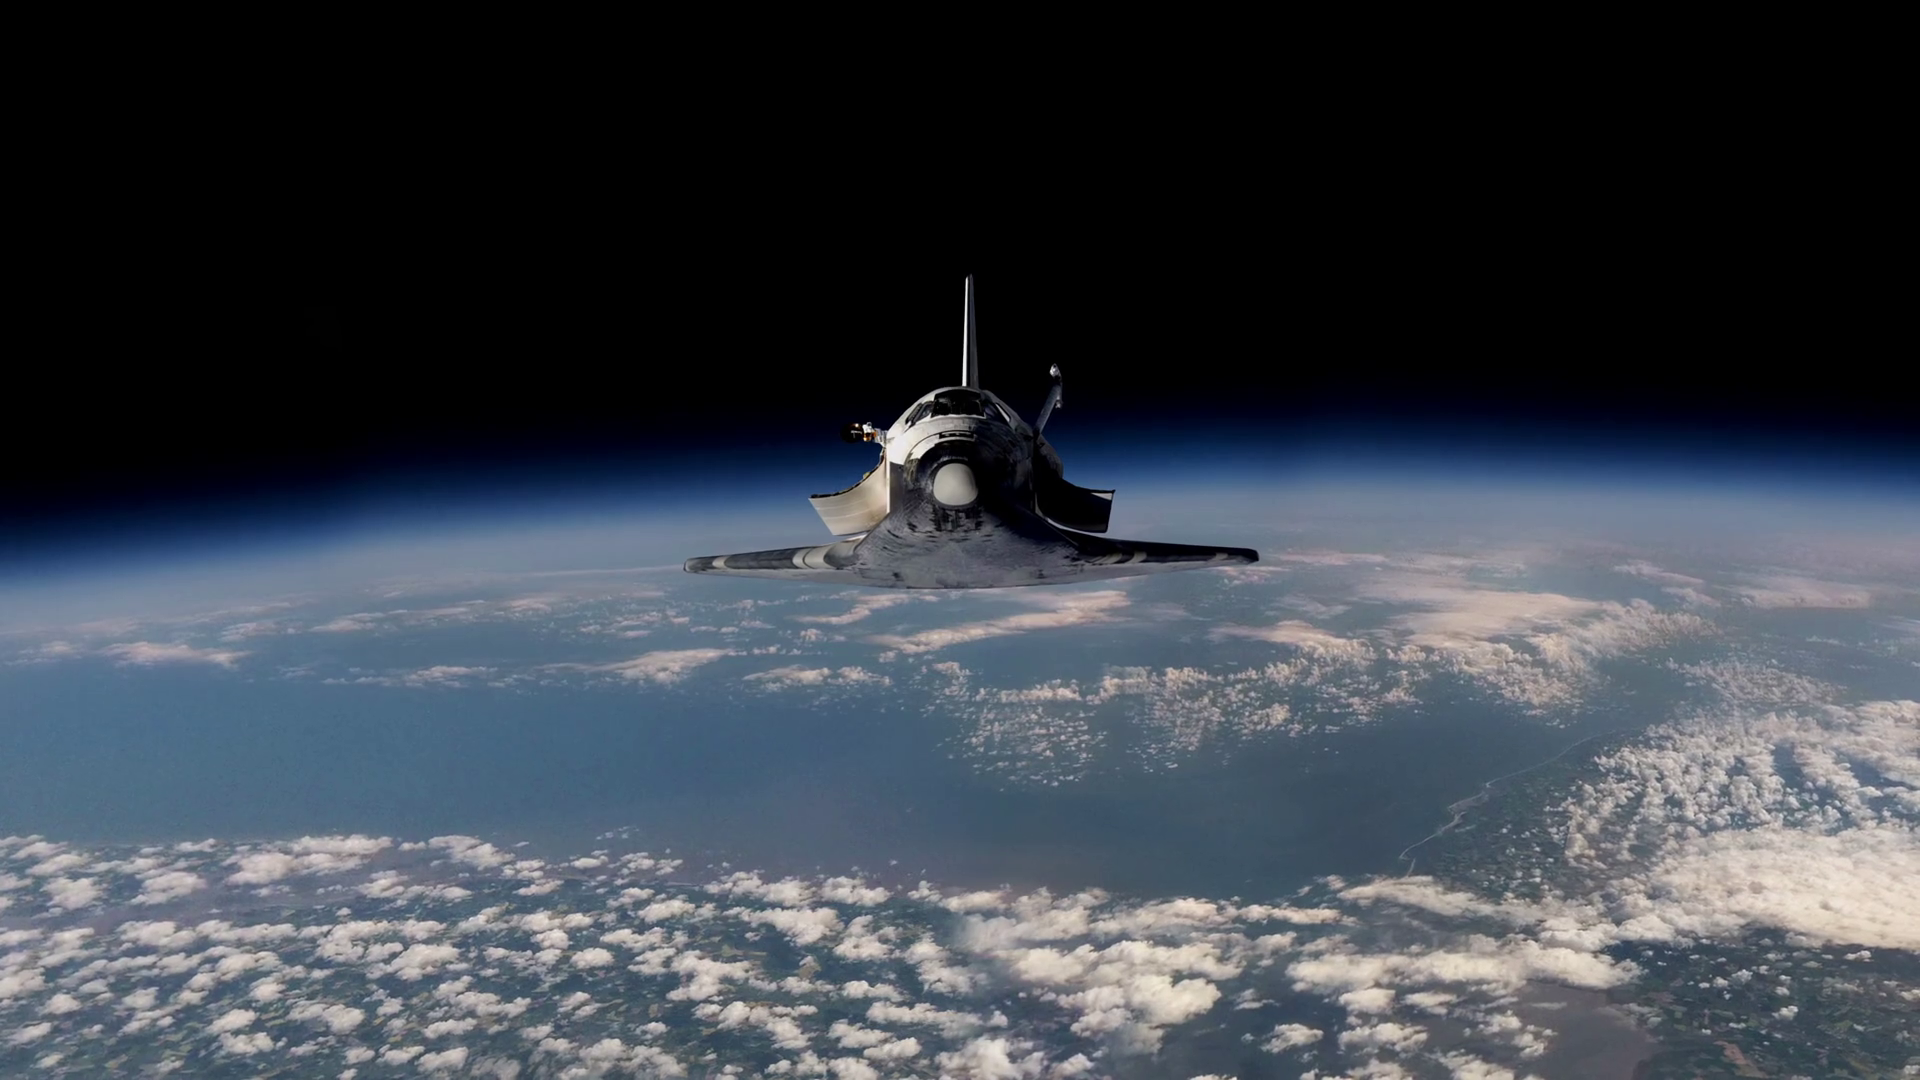 Space Shuttle Floats In Space Perfect Of Computer Graphics Videos About Space Earth Orbit Iss The International Space Station Astronauts Nasa And Discovery Motion Background Storyblocks